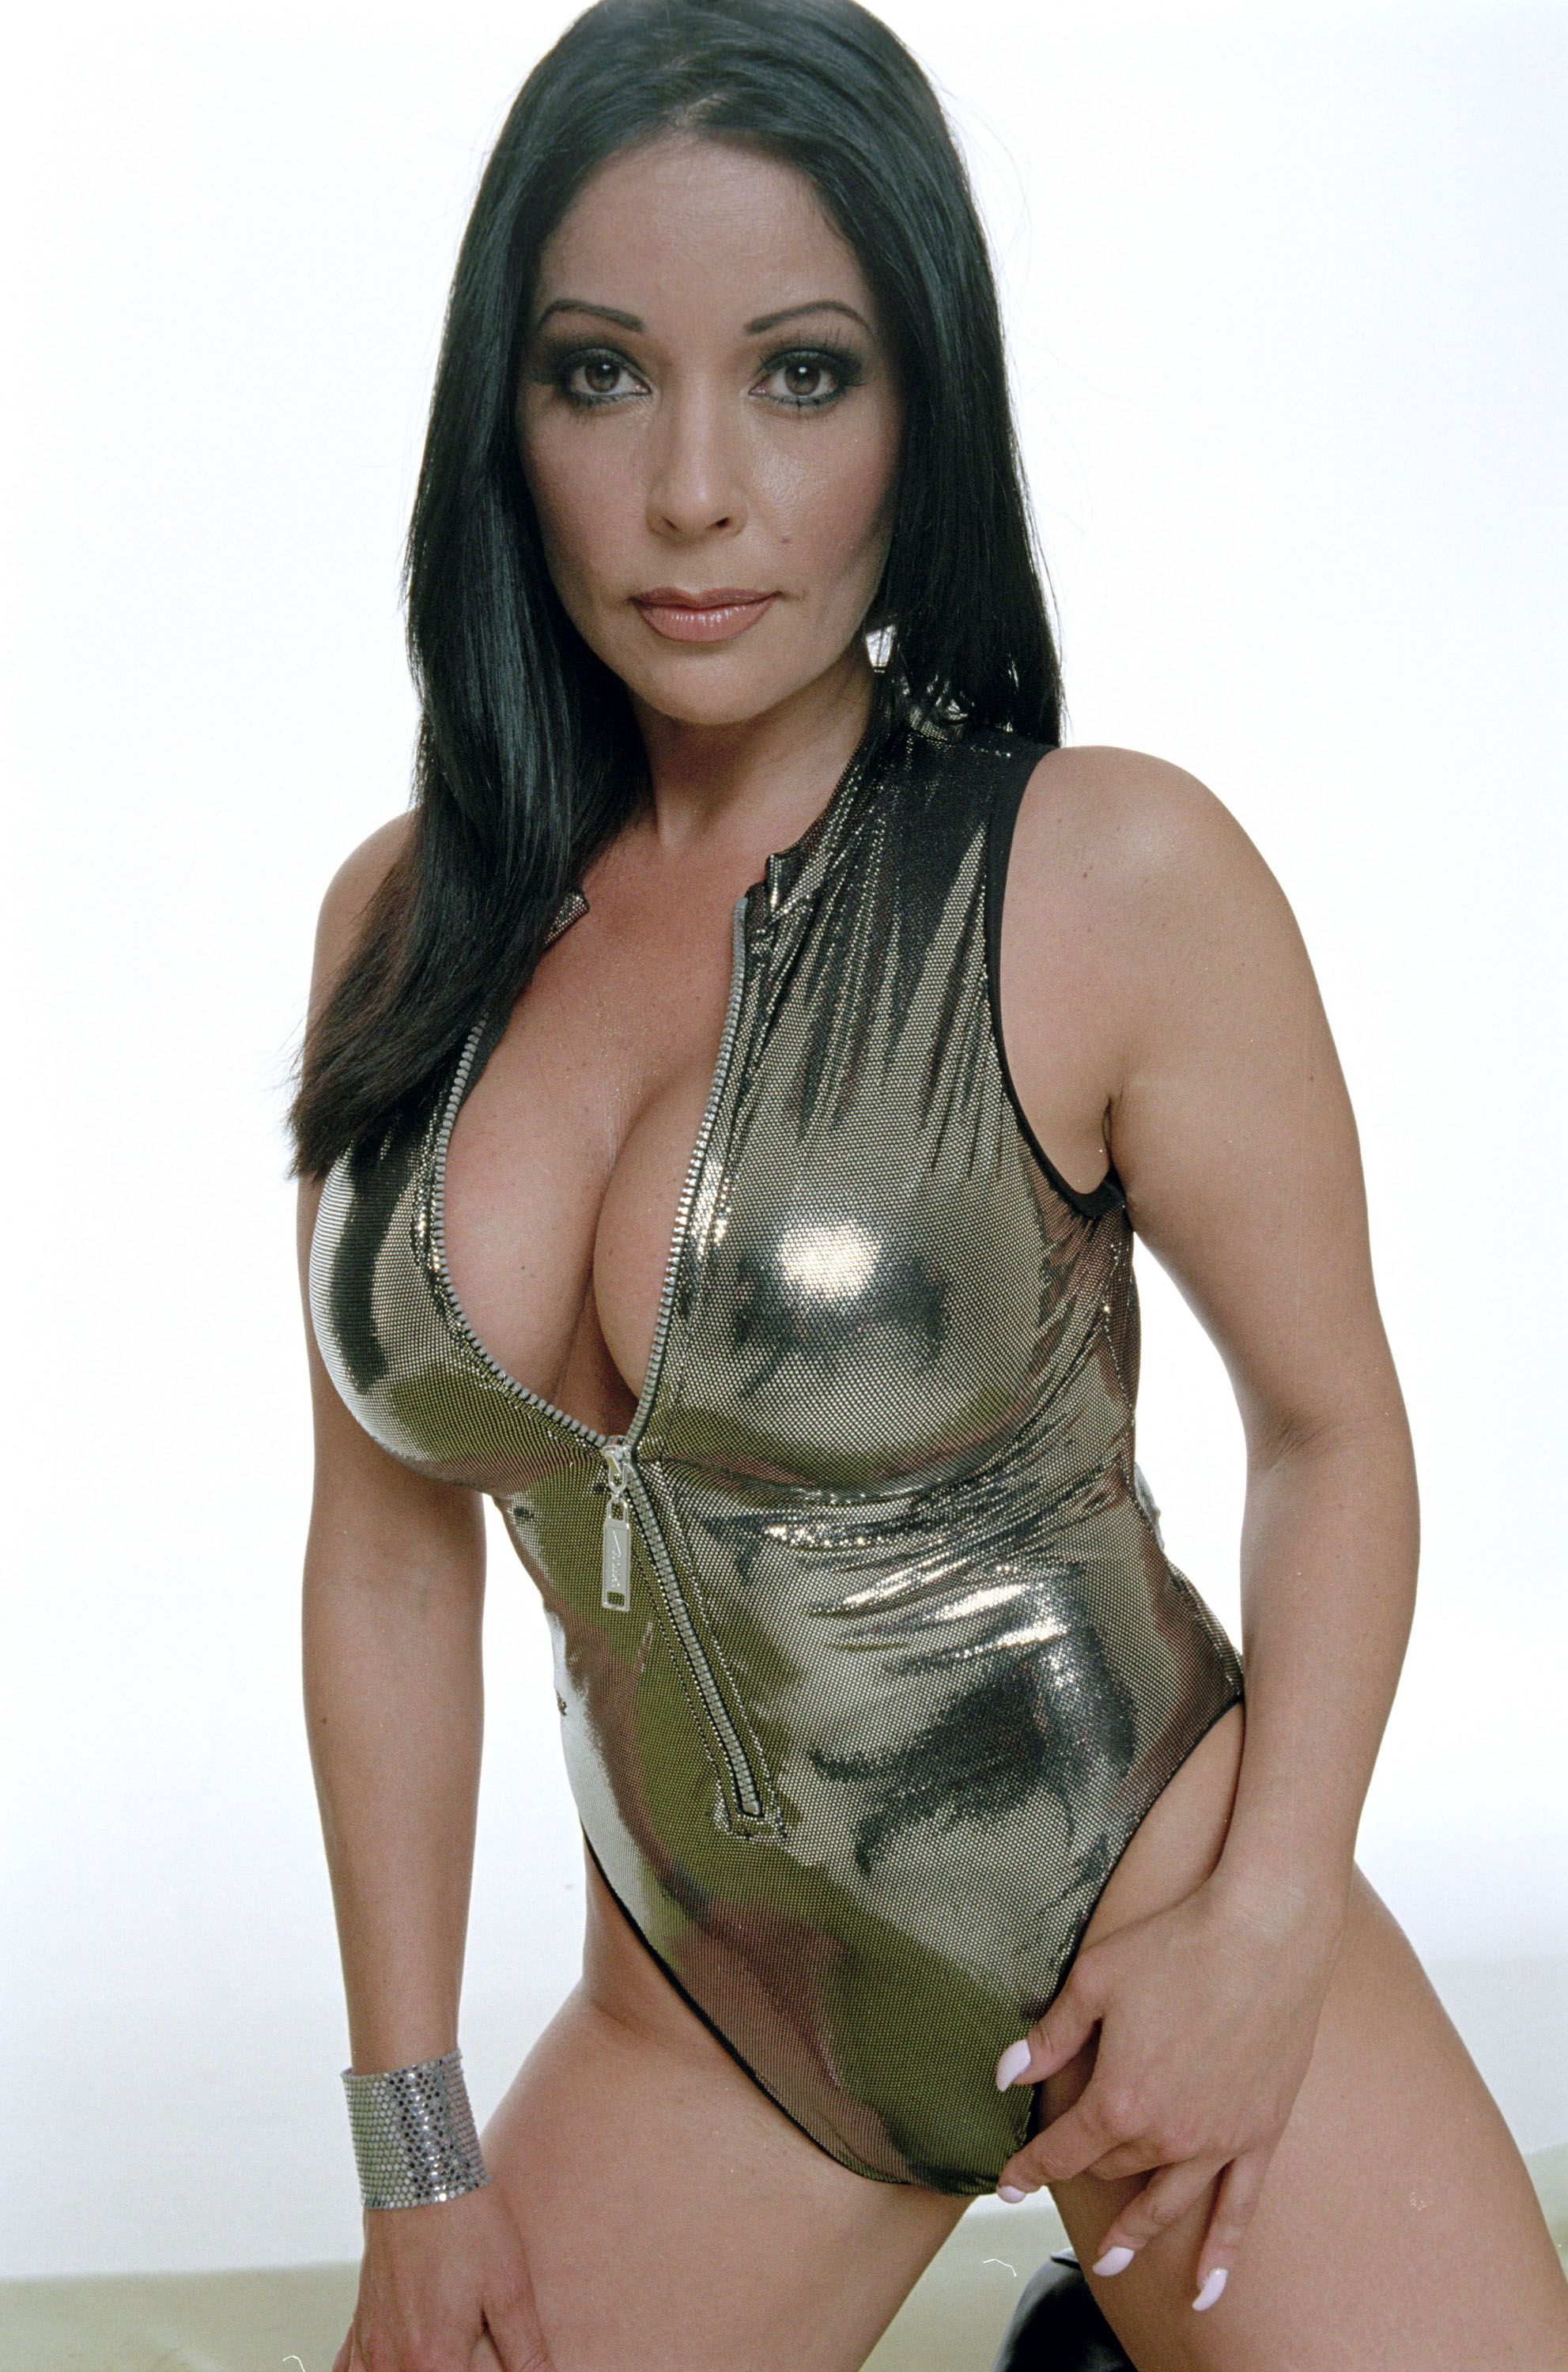 apollonia kotero daughter